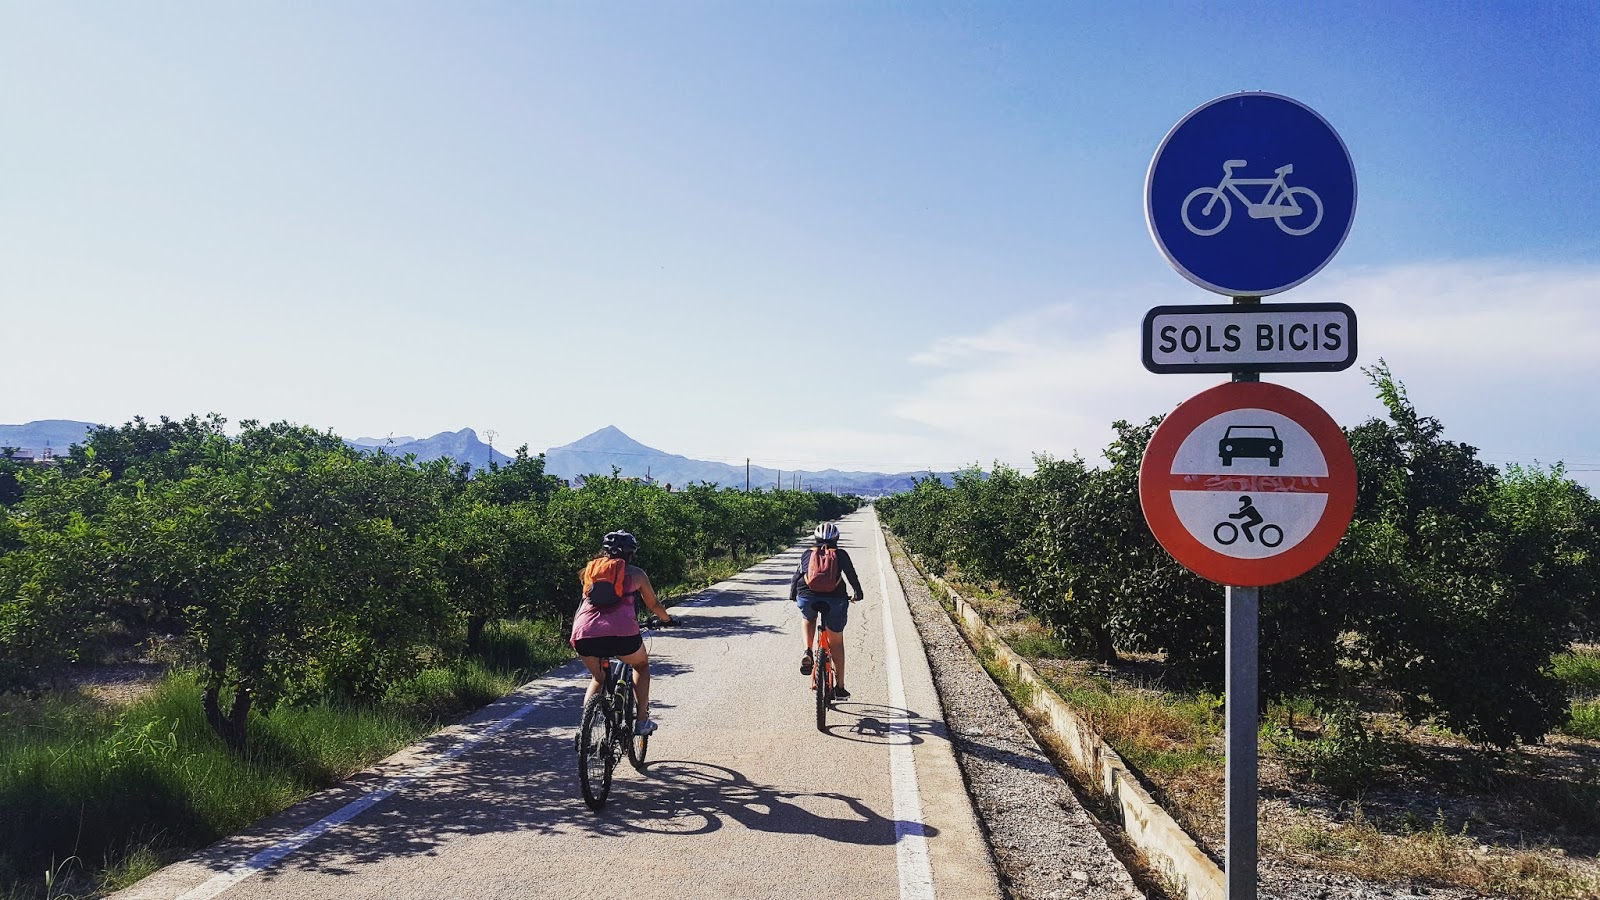 Vías Verdes - Rail trails in Spain